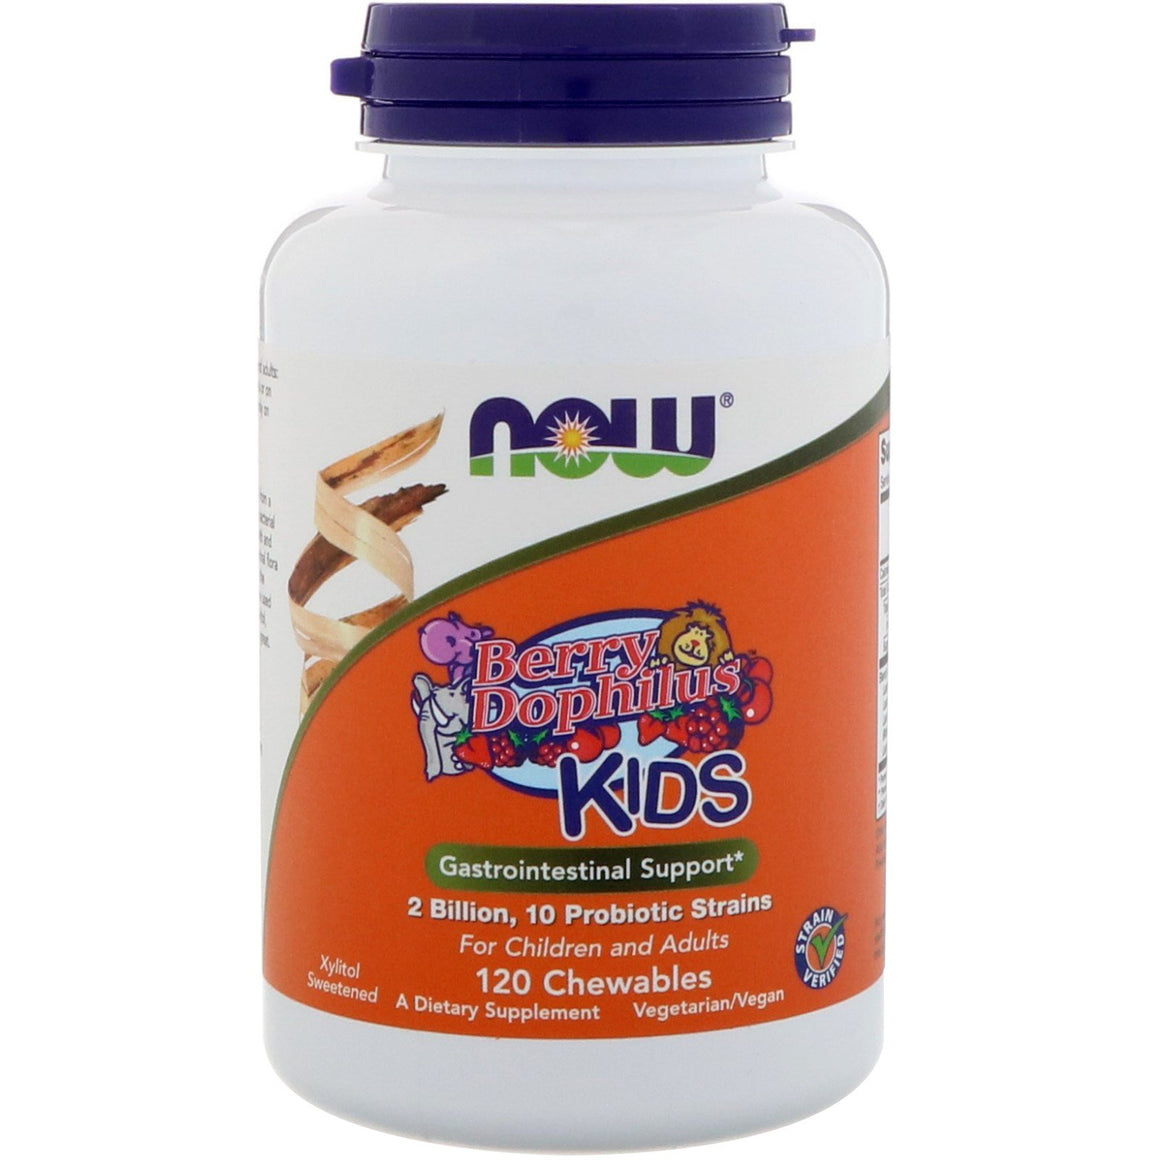 Now BerryDophilus Probiotic Kids